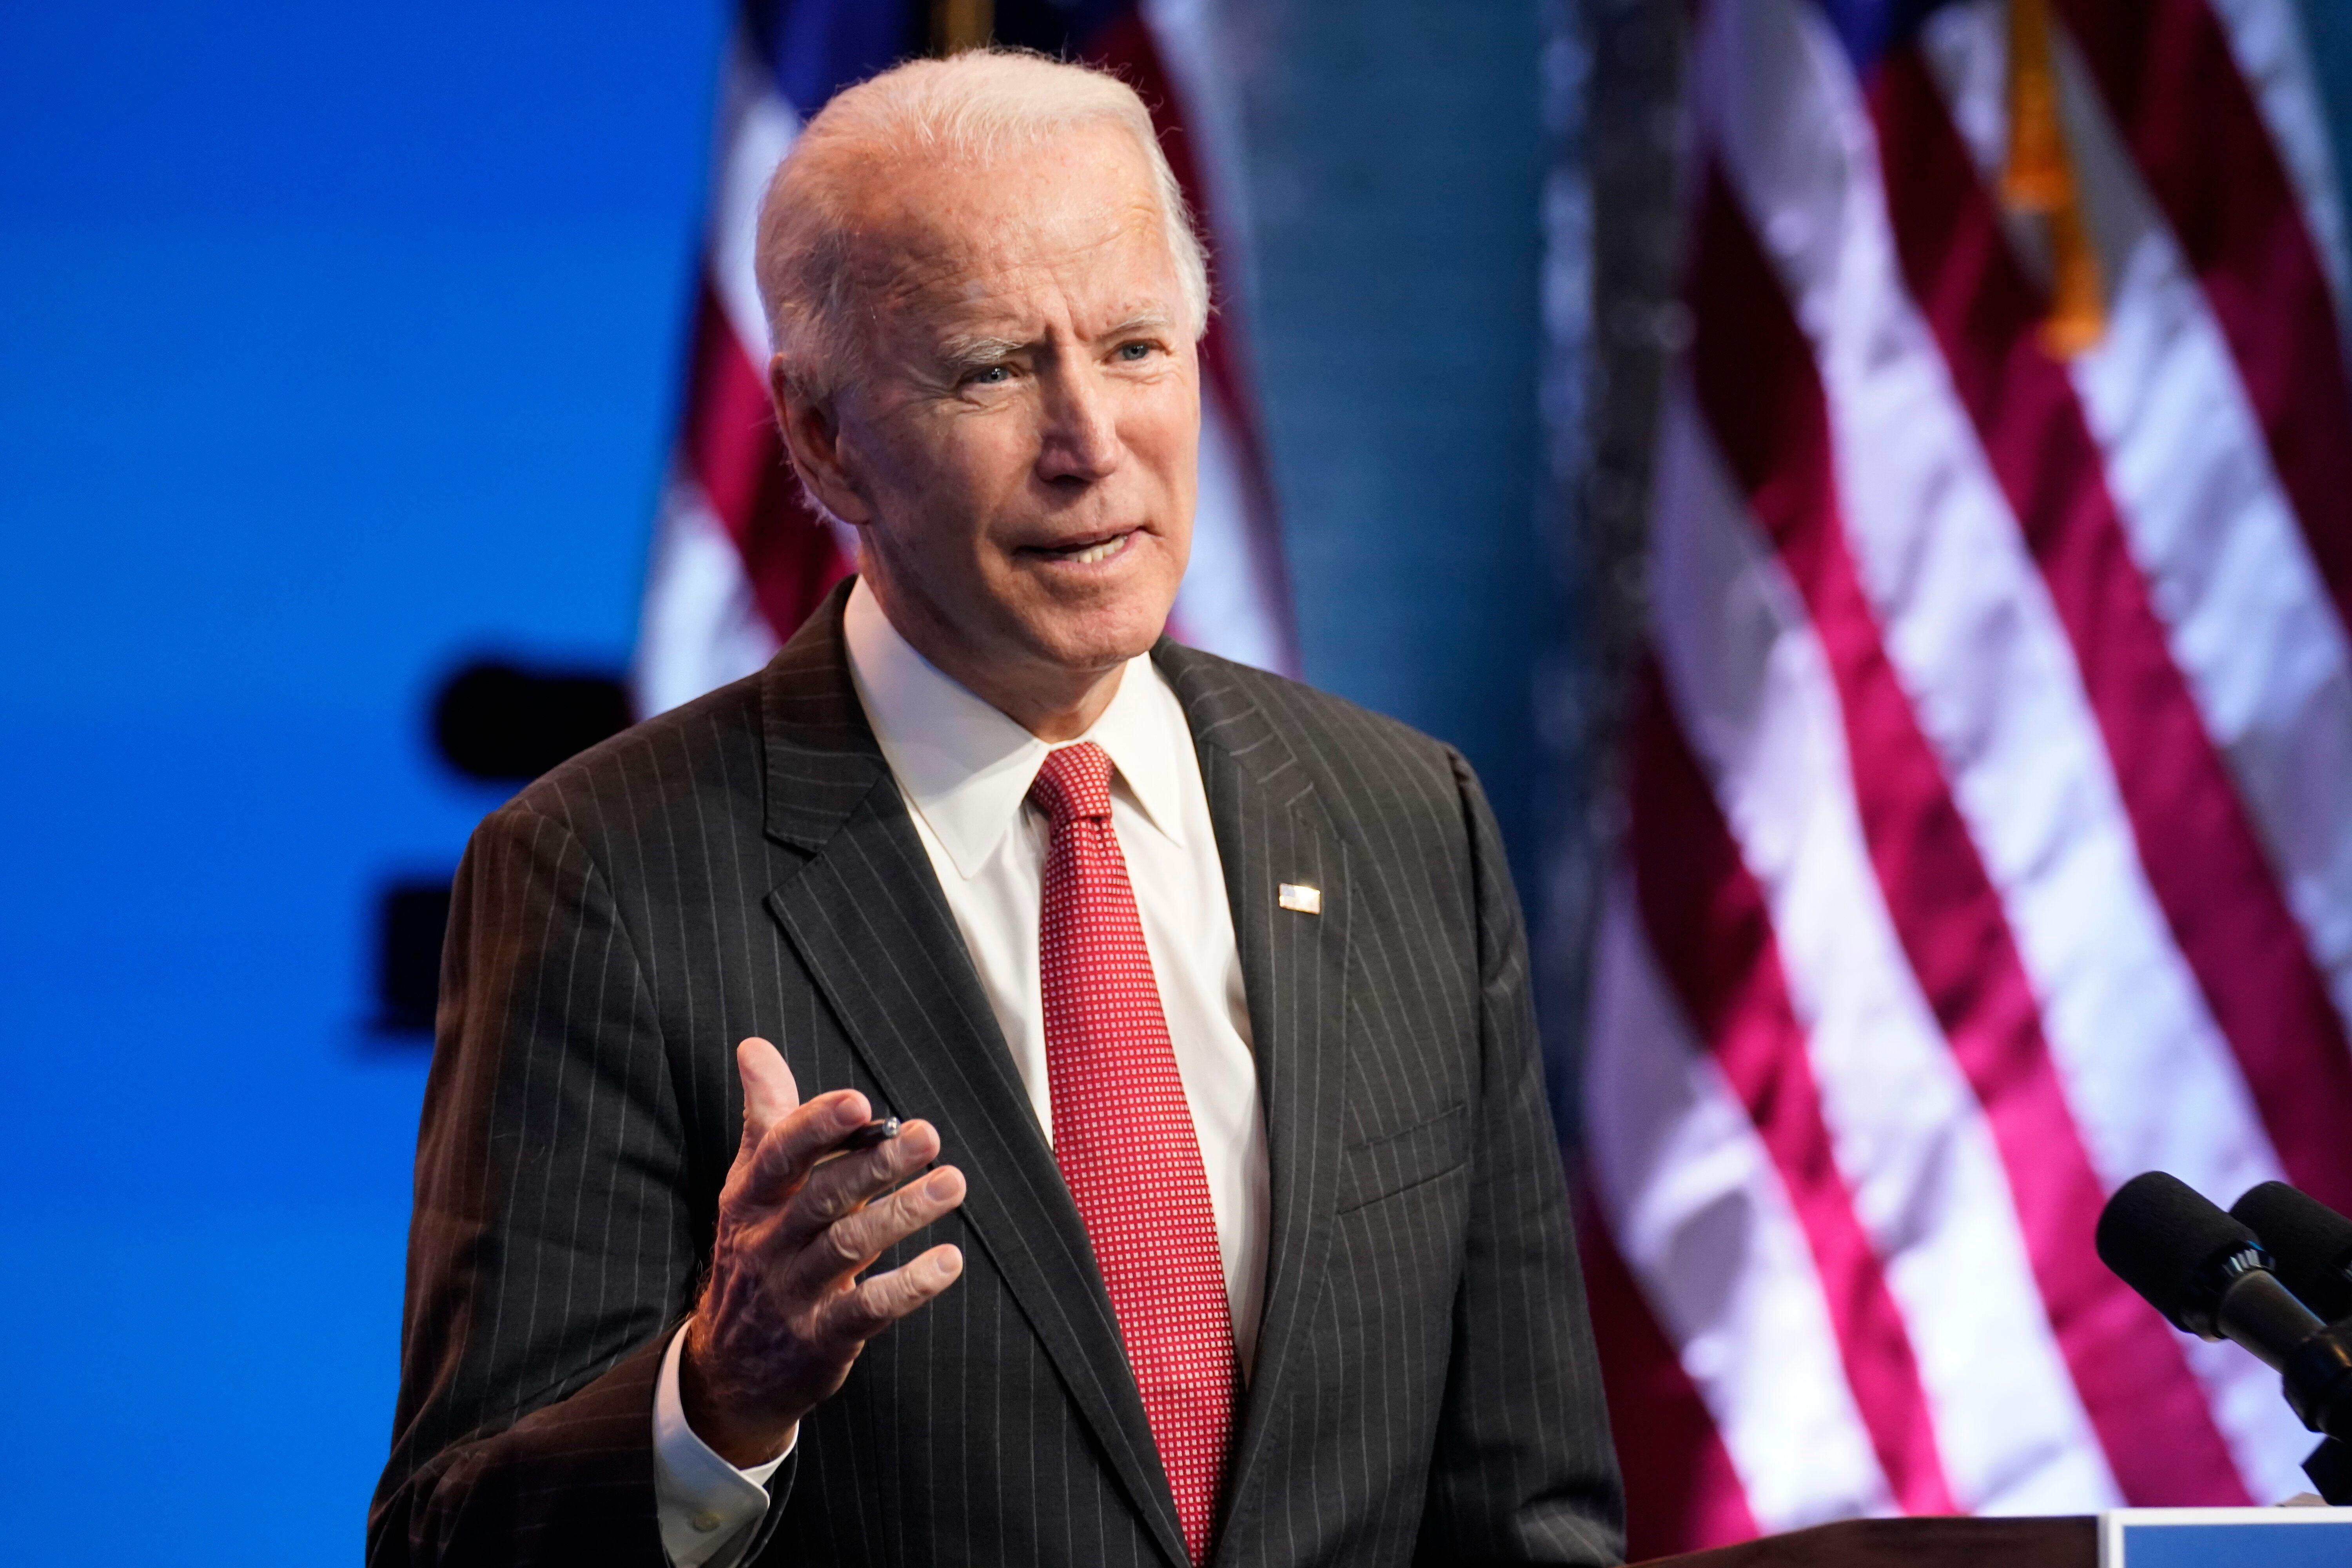 Biden on board with push for large relief bill: Spokesman